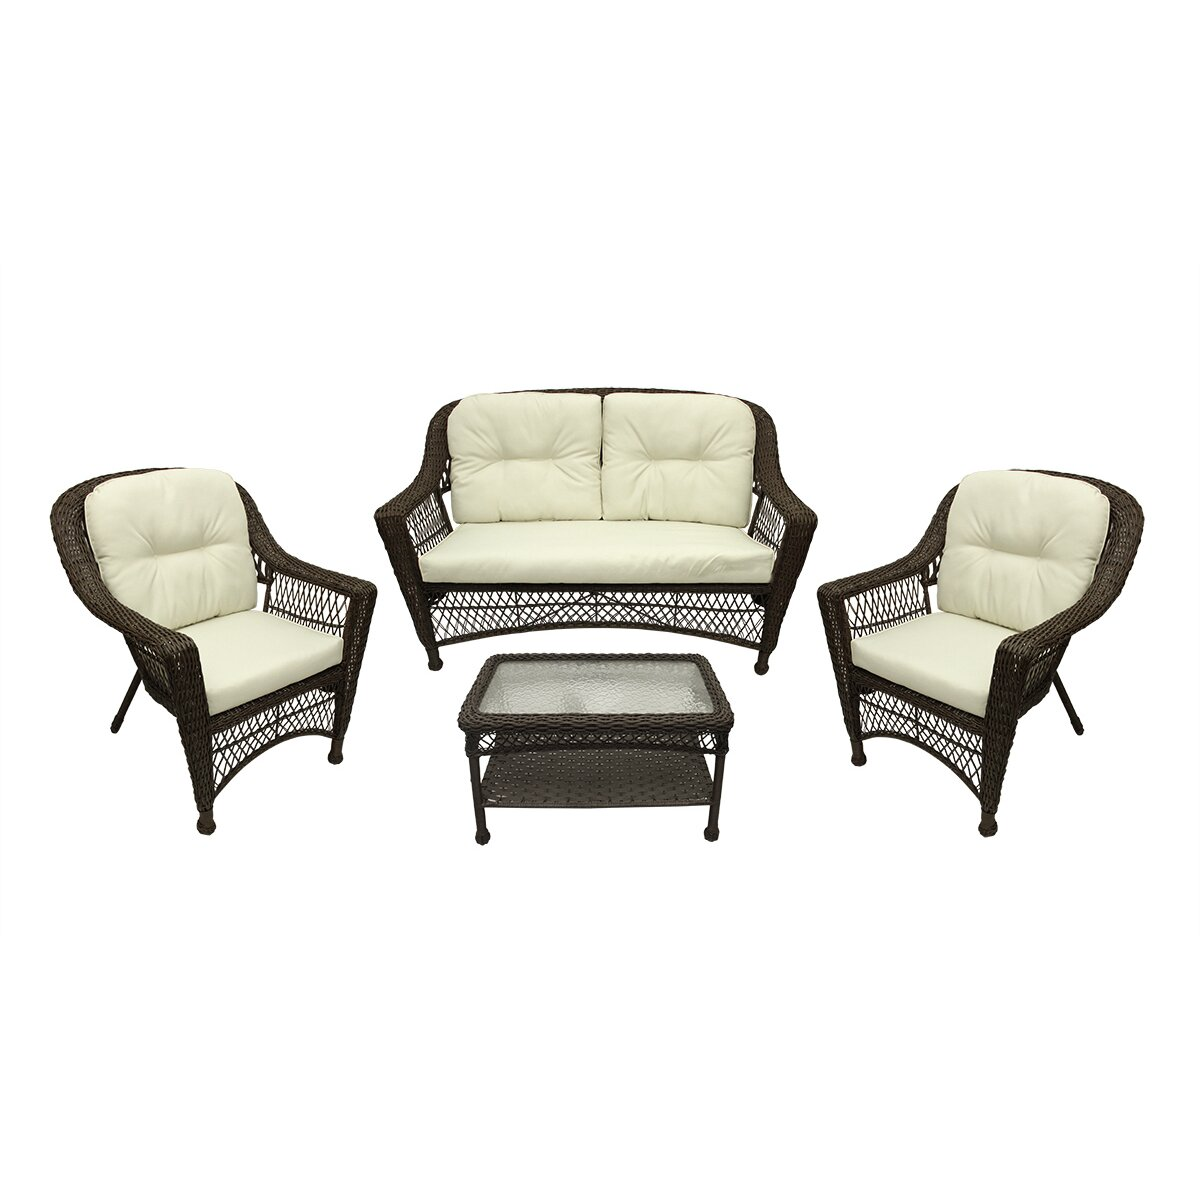 Northlight Somerset 4 Piece Resin Wicker Patio Loveseat Chairs And Table Furniture Set Wayfair